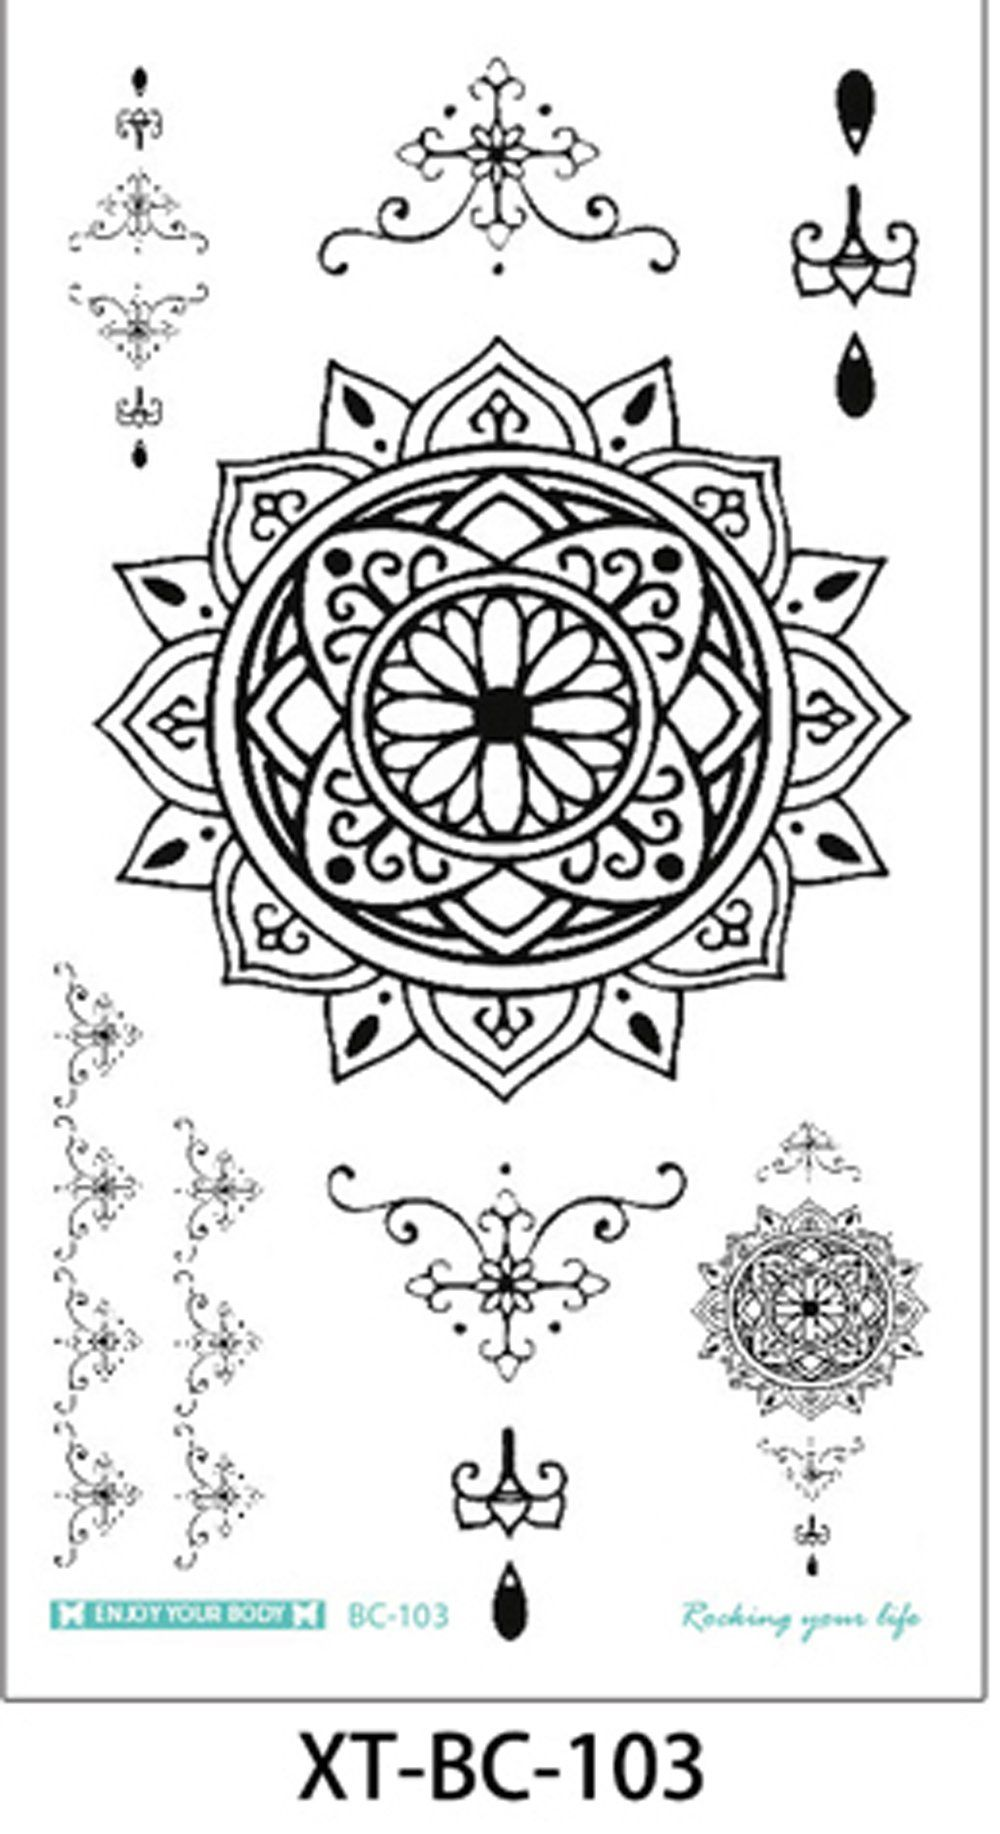 Product Information - Product Type: Tattoo Sheet Set Tattoo Sheet Size: 21cm(L)*15cm(W) Tattoo Application & Removal Instructions chandelier lotus jewelry sternum underboob tattoo